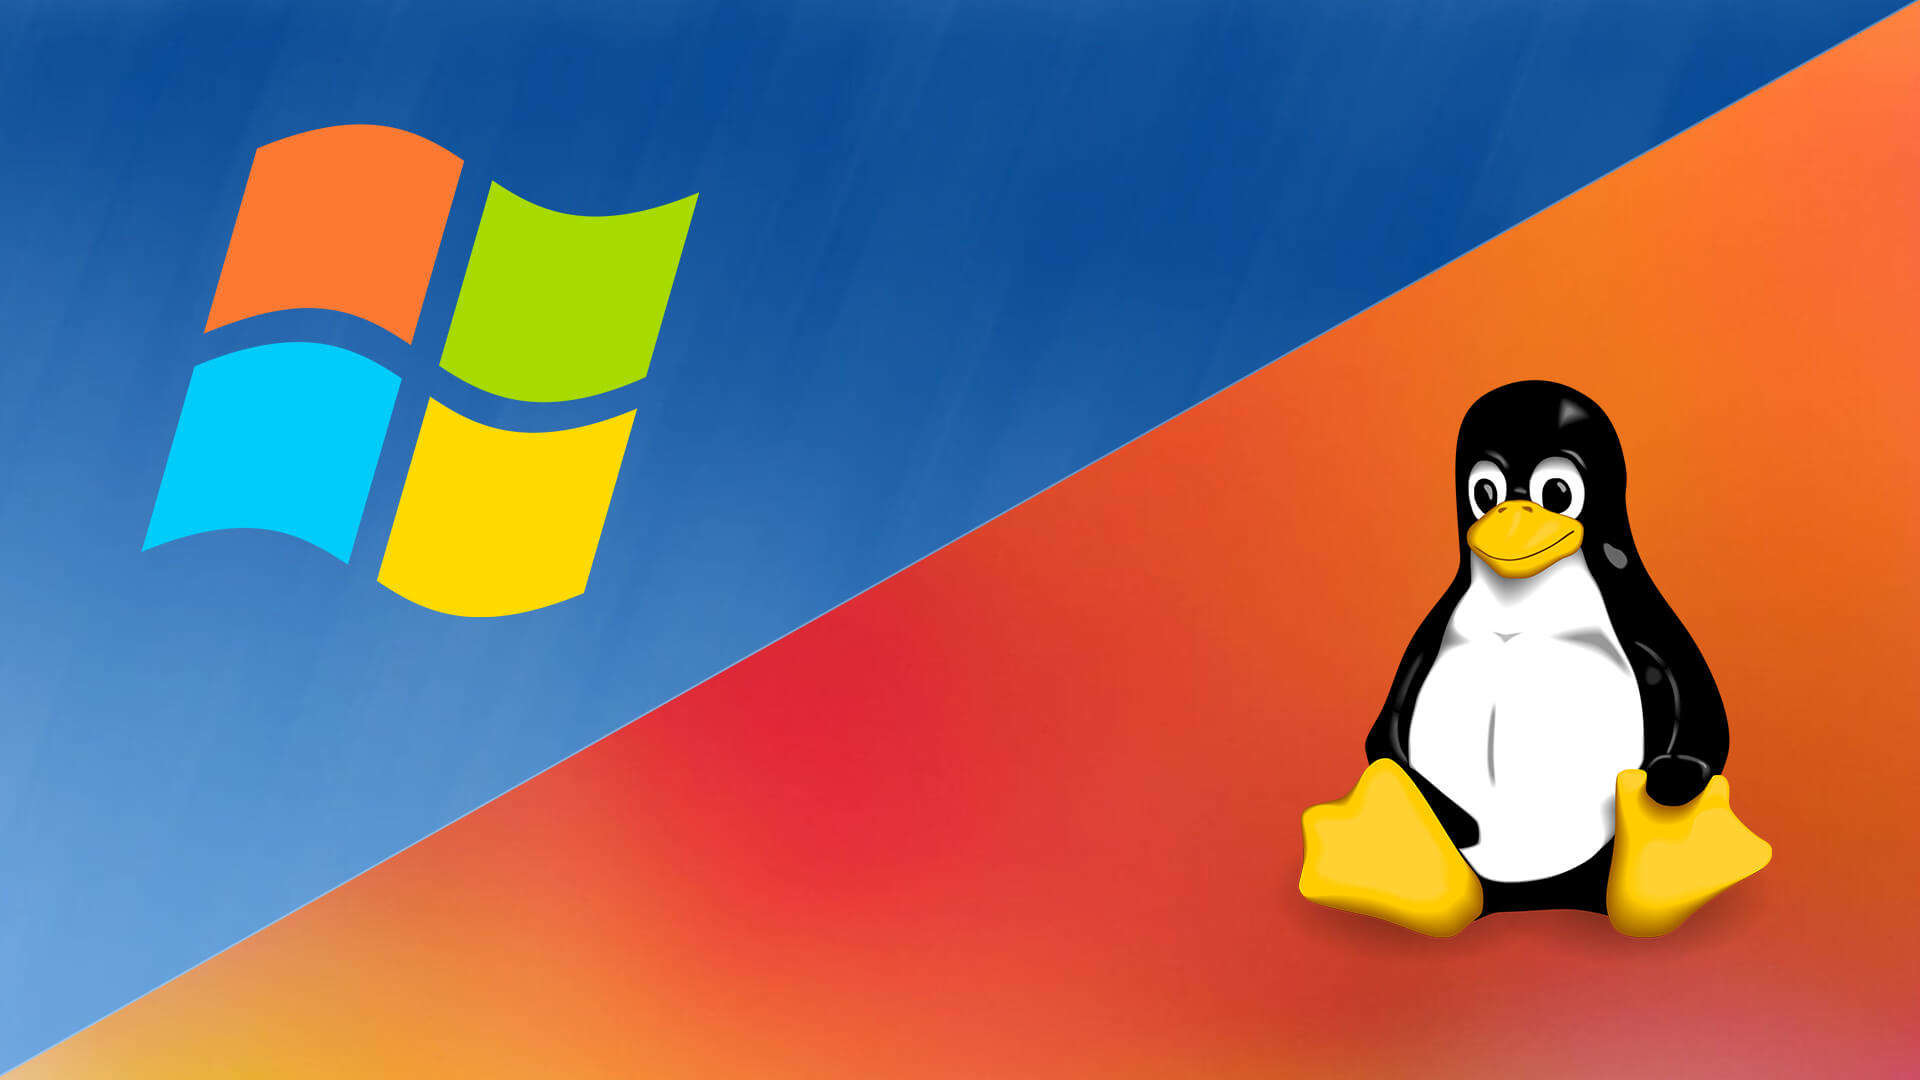 unix vs windows Windows and unix as far as operating systems go, to some it would seem as if unix has a clear advantage over windows unix offers greater flexibility than windows operating systems furthermore.